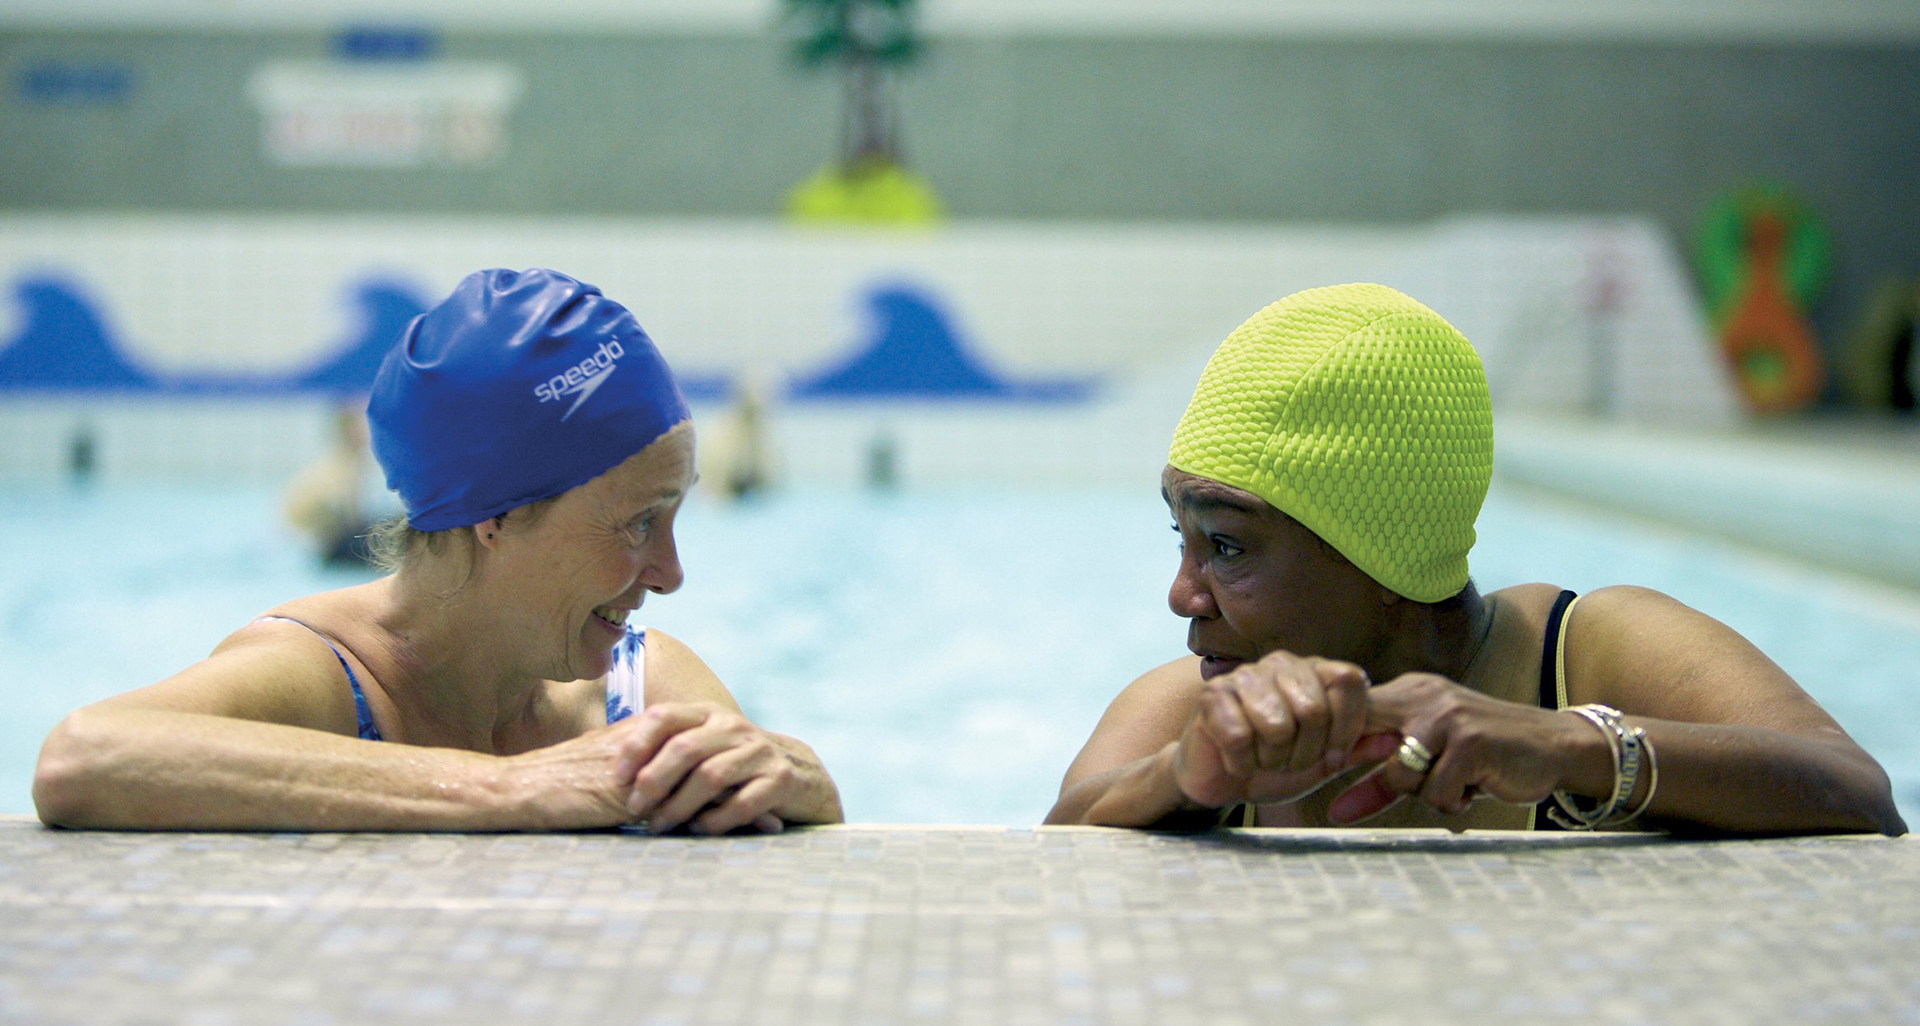 Two women talk whilst on the side of a swimming pool. Insight